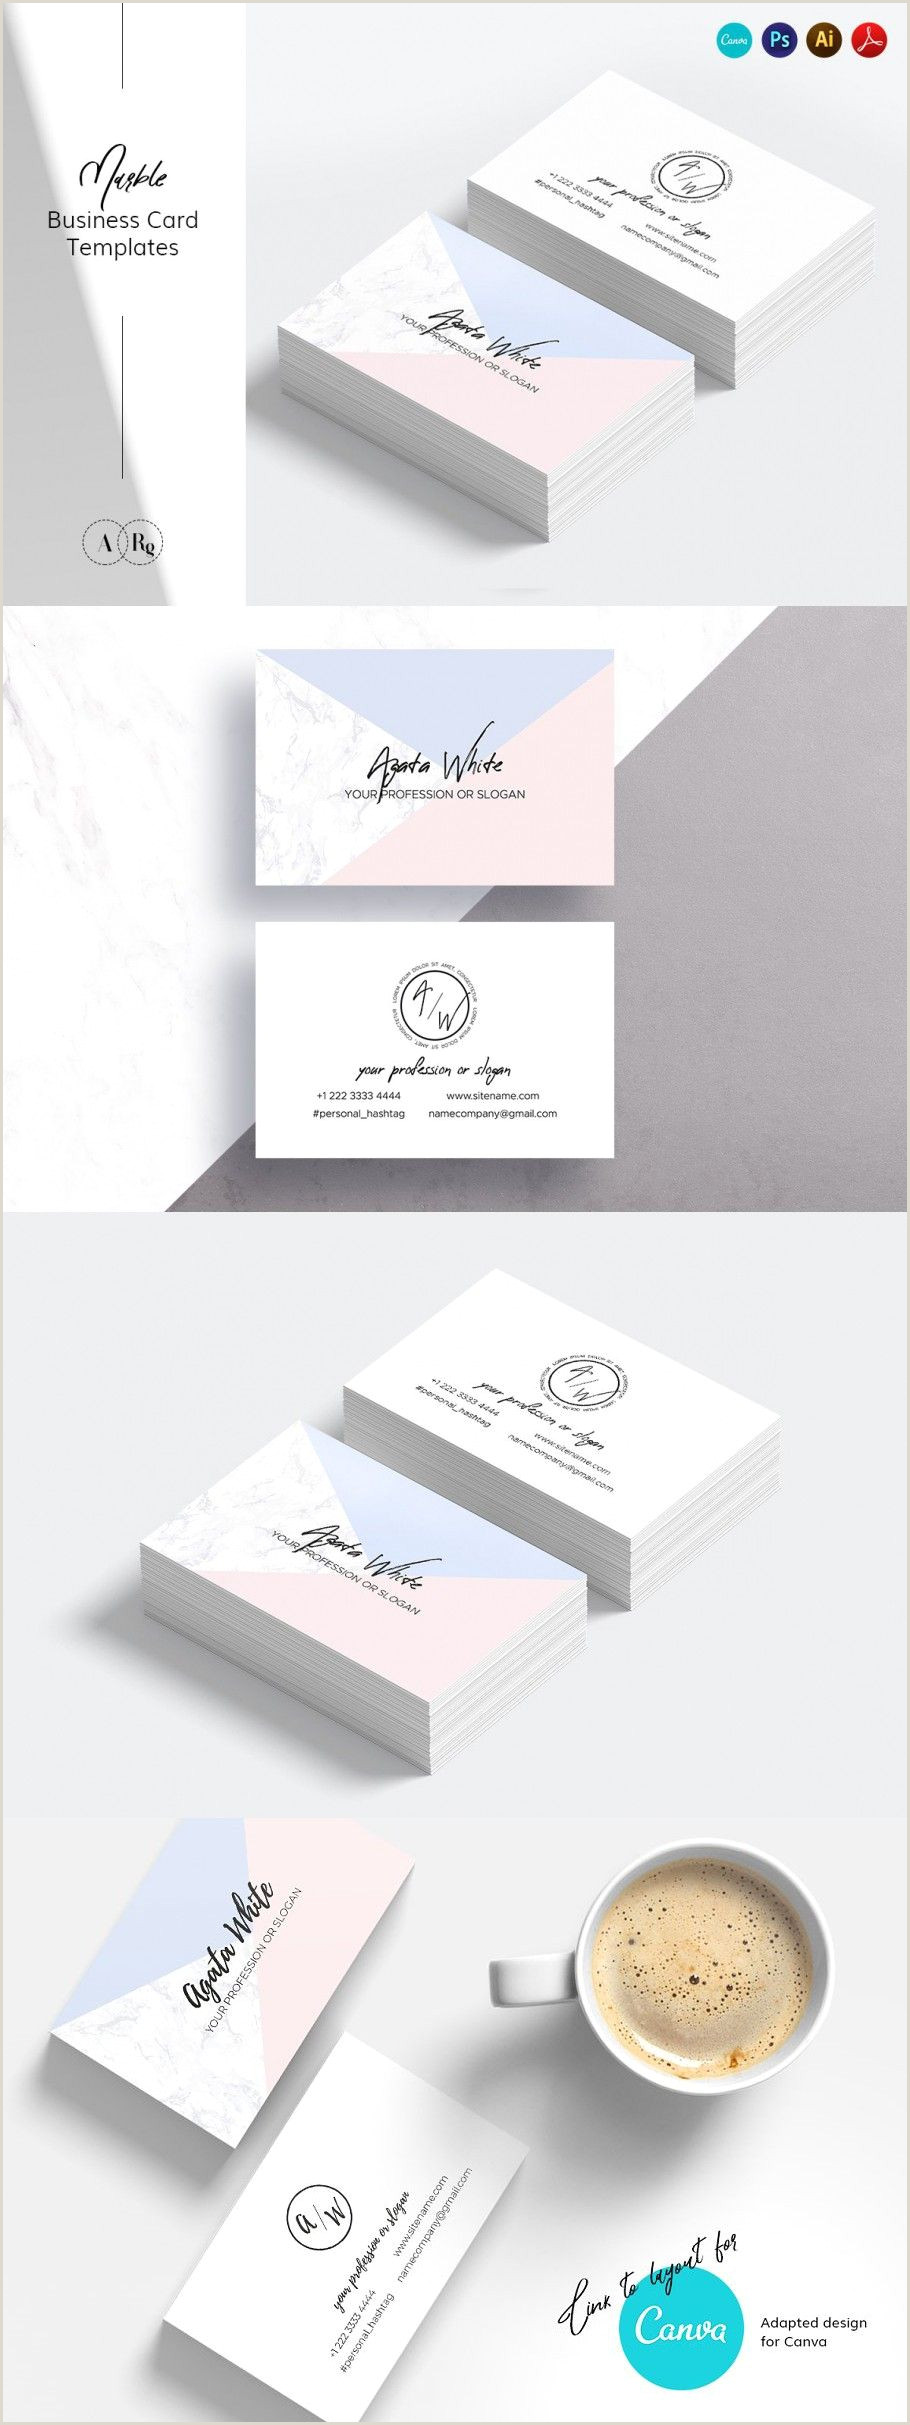 Pinterest Business Cards Simple & Clean Business Card In 2020